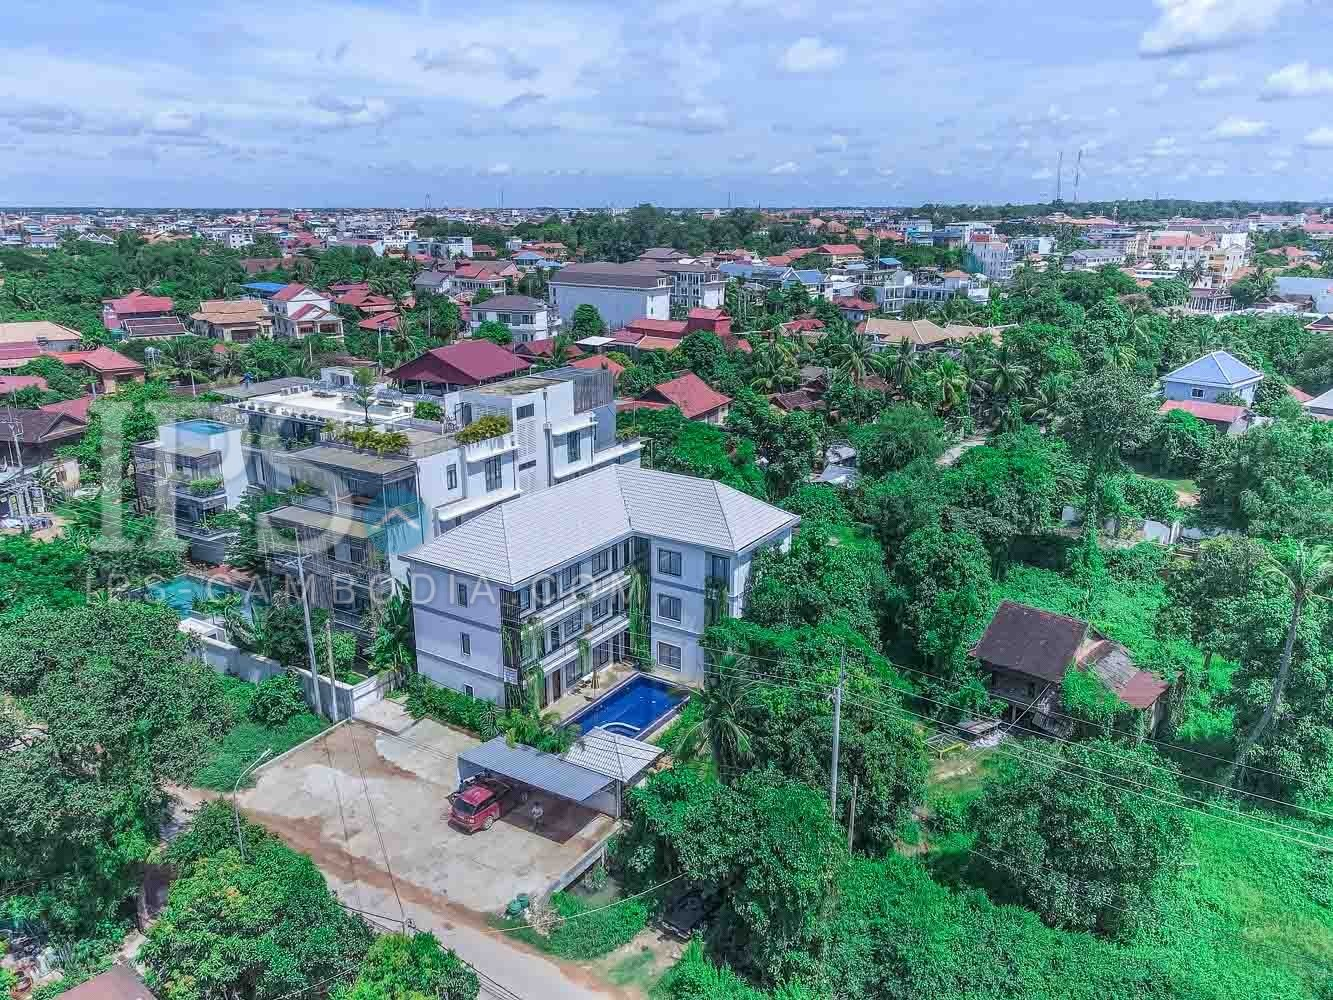 21 Bedroom Apartment For Sale - Sala Kamreuk, Siem Reap